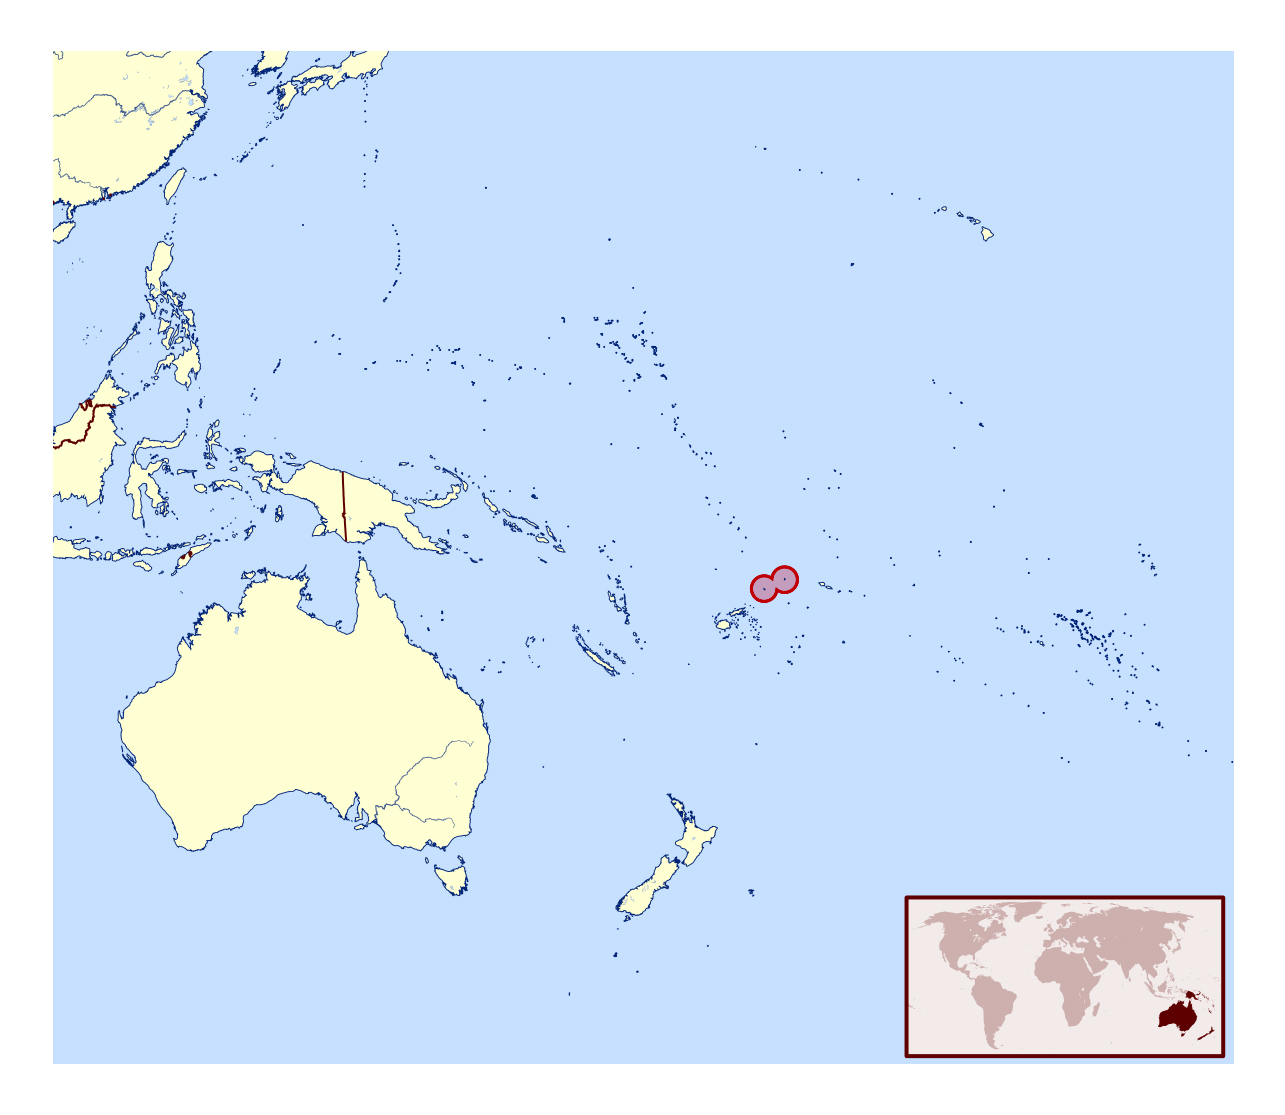 Gooseberries are to cherries what Wallis and Futuna is to…   What's further  as well File Wallis and Futuna on the globe  Polynesia centered  svg together with Wallis and Futuna Map as well Locator map of Wallis and Futuna Pictures   Getty Images furthermore Detailed location map of Wallis and Futuna   Wallis and Futuna furthermore wallis and futuna map   28 images   cartes des iles wallis and moreover Wallis and Futuna Elevation and Elevation Maps of Cities in addition Wallis and Futuna   Wikitravel moreover Modern Map Wallis And Futuna With Flag Of France Wf Stock Vector Art furthermore Where is Wallis and Futuna    Where is Wallis and Futuna Located in additionally Wallis and Futuna Map and Wallis and Futuna Satellite Images further NationMaster   Maps of Wallis and Futuna  1 in total furthermore Wallis and Futuna map   vector clipart together with real life map collection • mappery moreover Wallis and Futuna free map. on wallis and futuna map